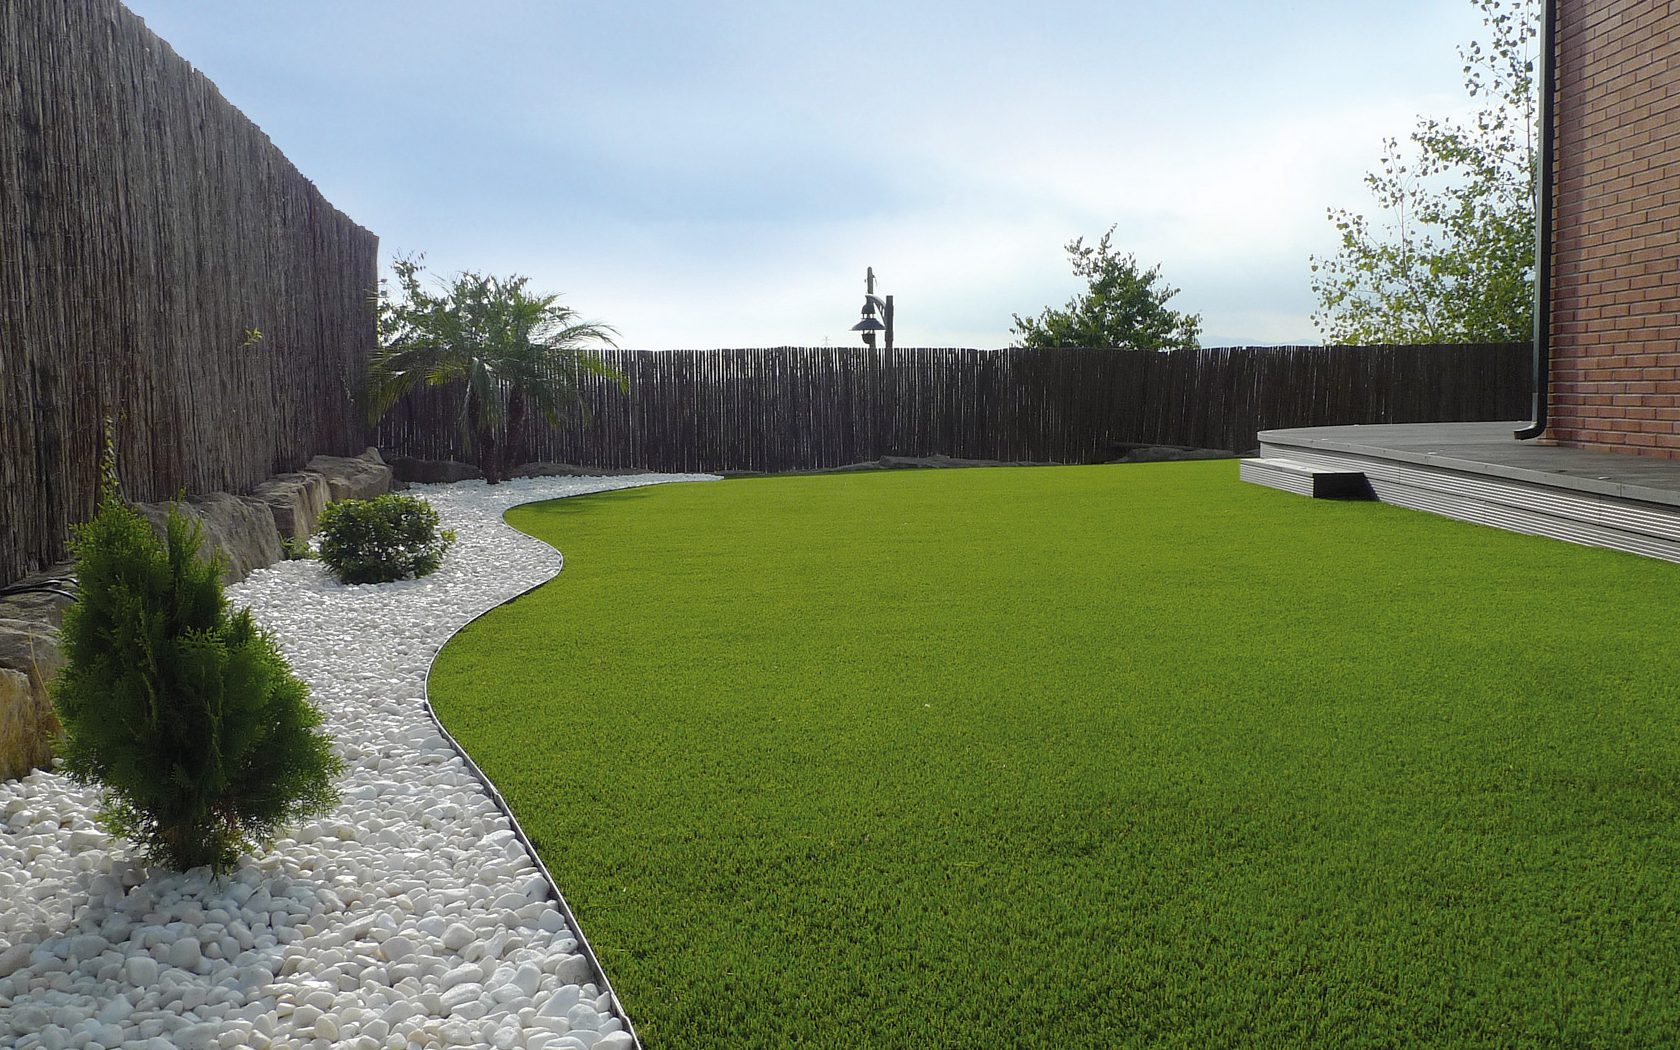 Speedgrass jard n terraza cesped artificial mobiliario - Mundo cesped artificial ...